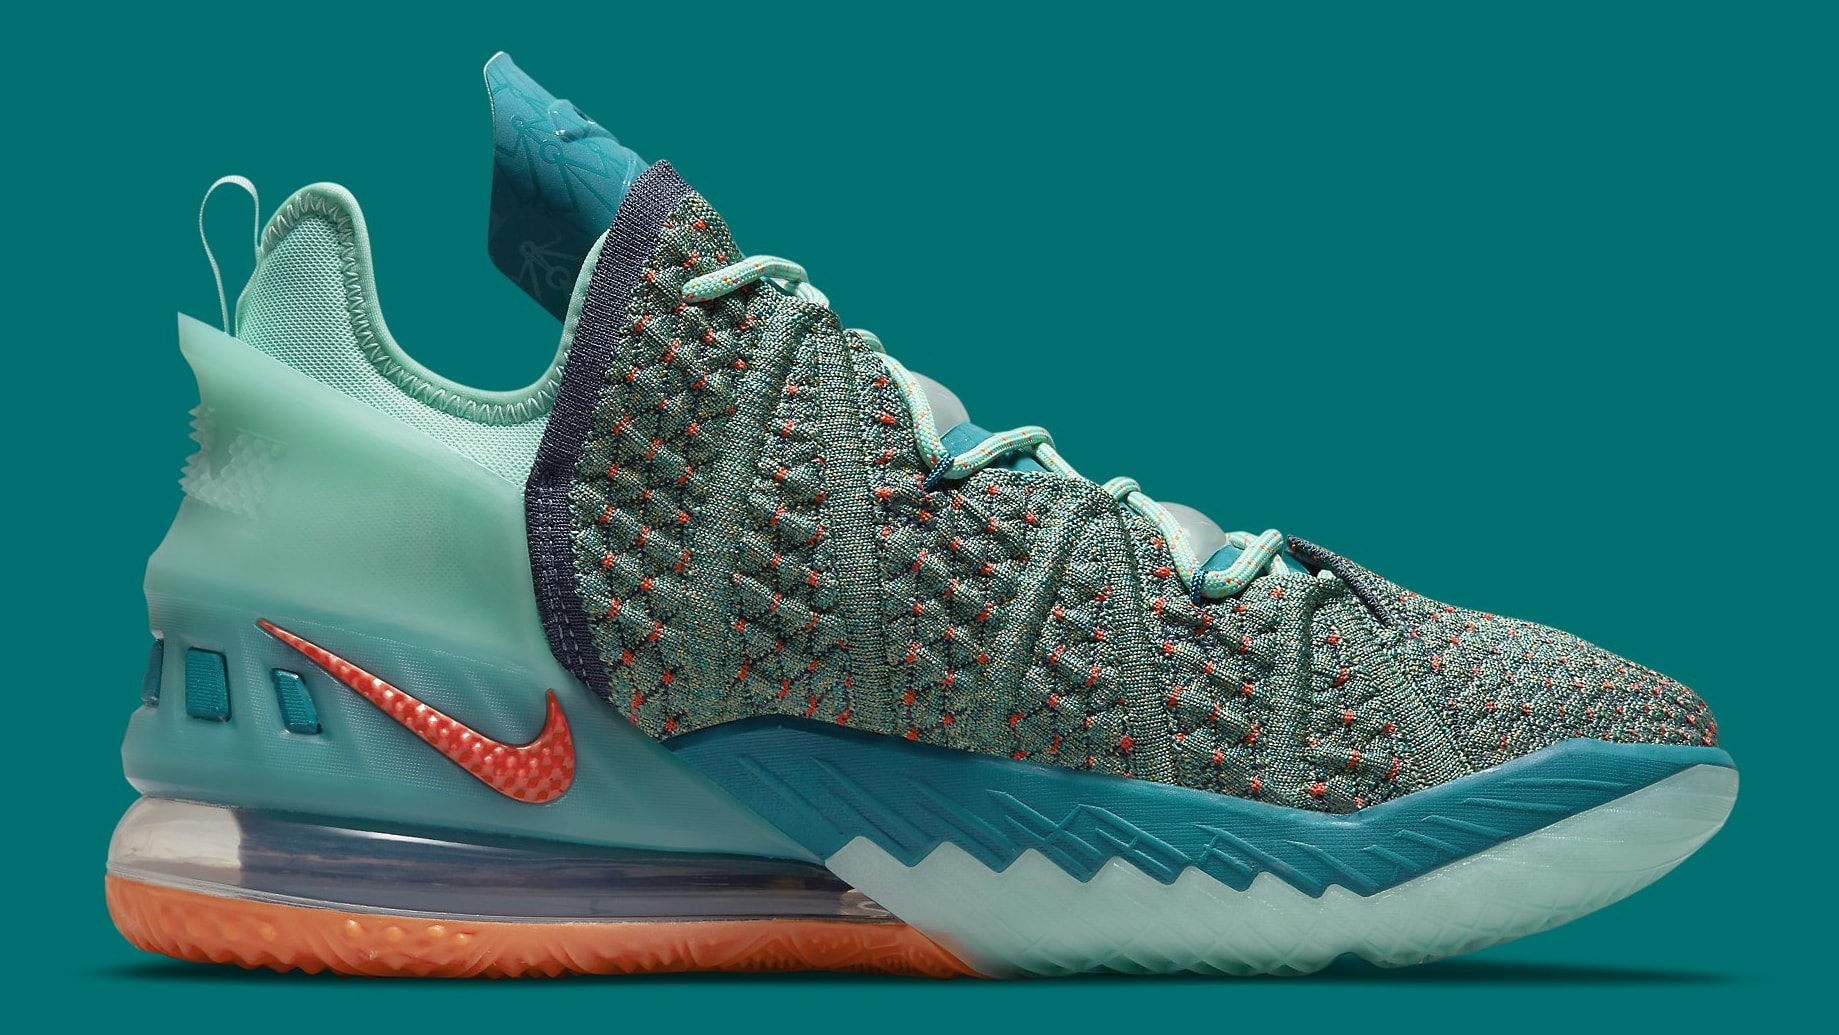 Nike LeBron 18 We Are Family Release Date CQ9283-300 Medial